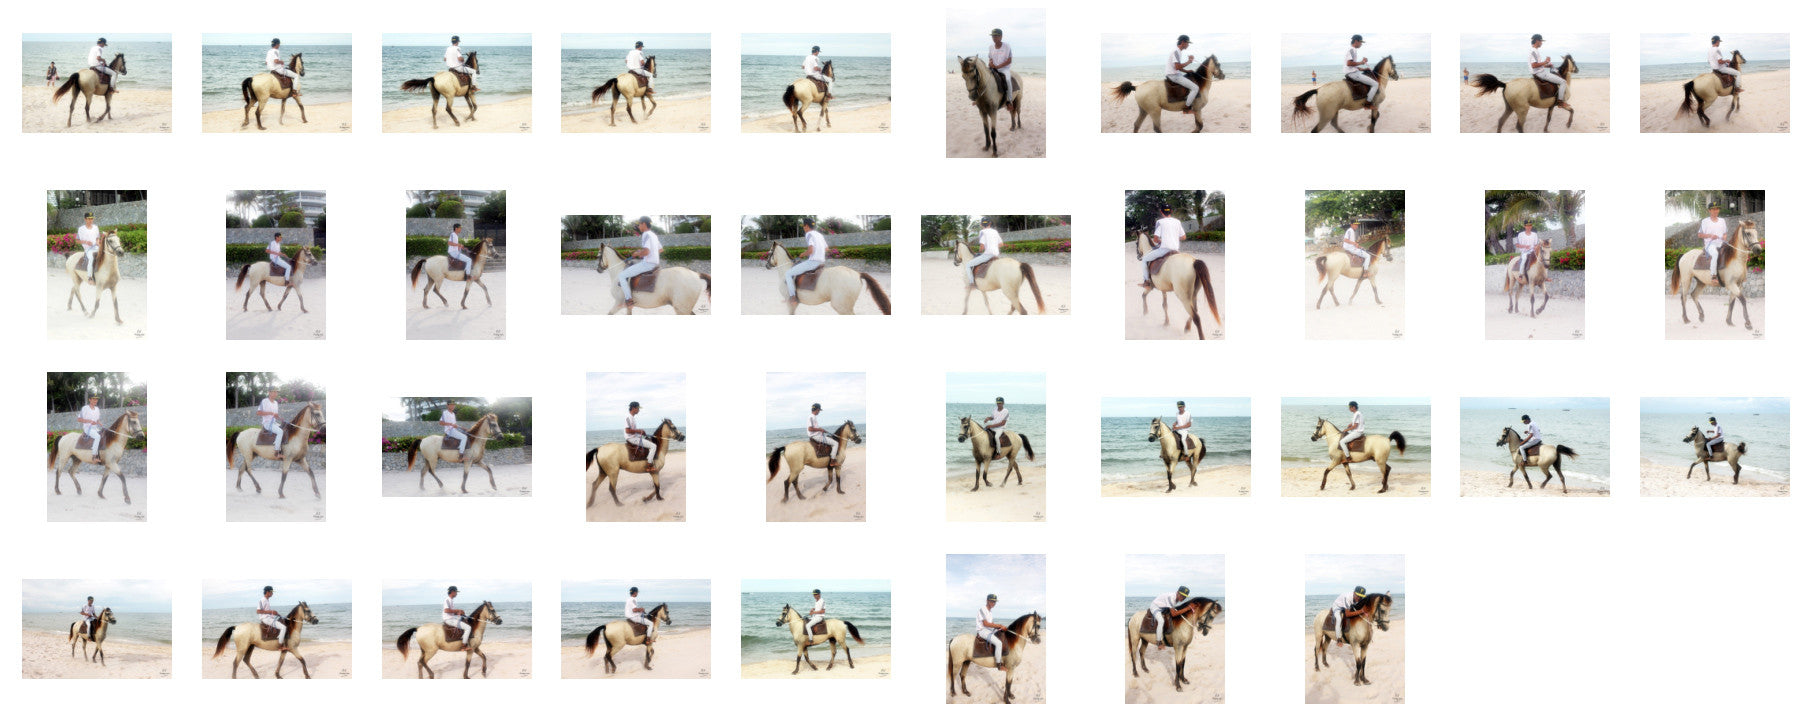 Thaksin in Jodhpurs Riding with Saddle on Buckskin Horse, Part 5 - Riding.Vision